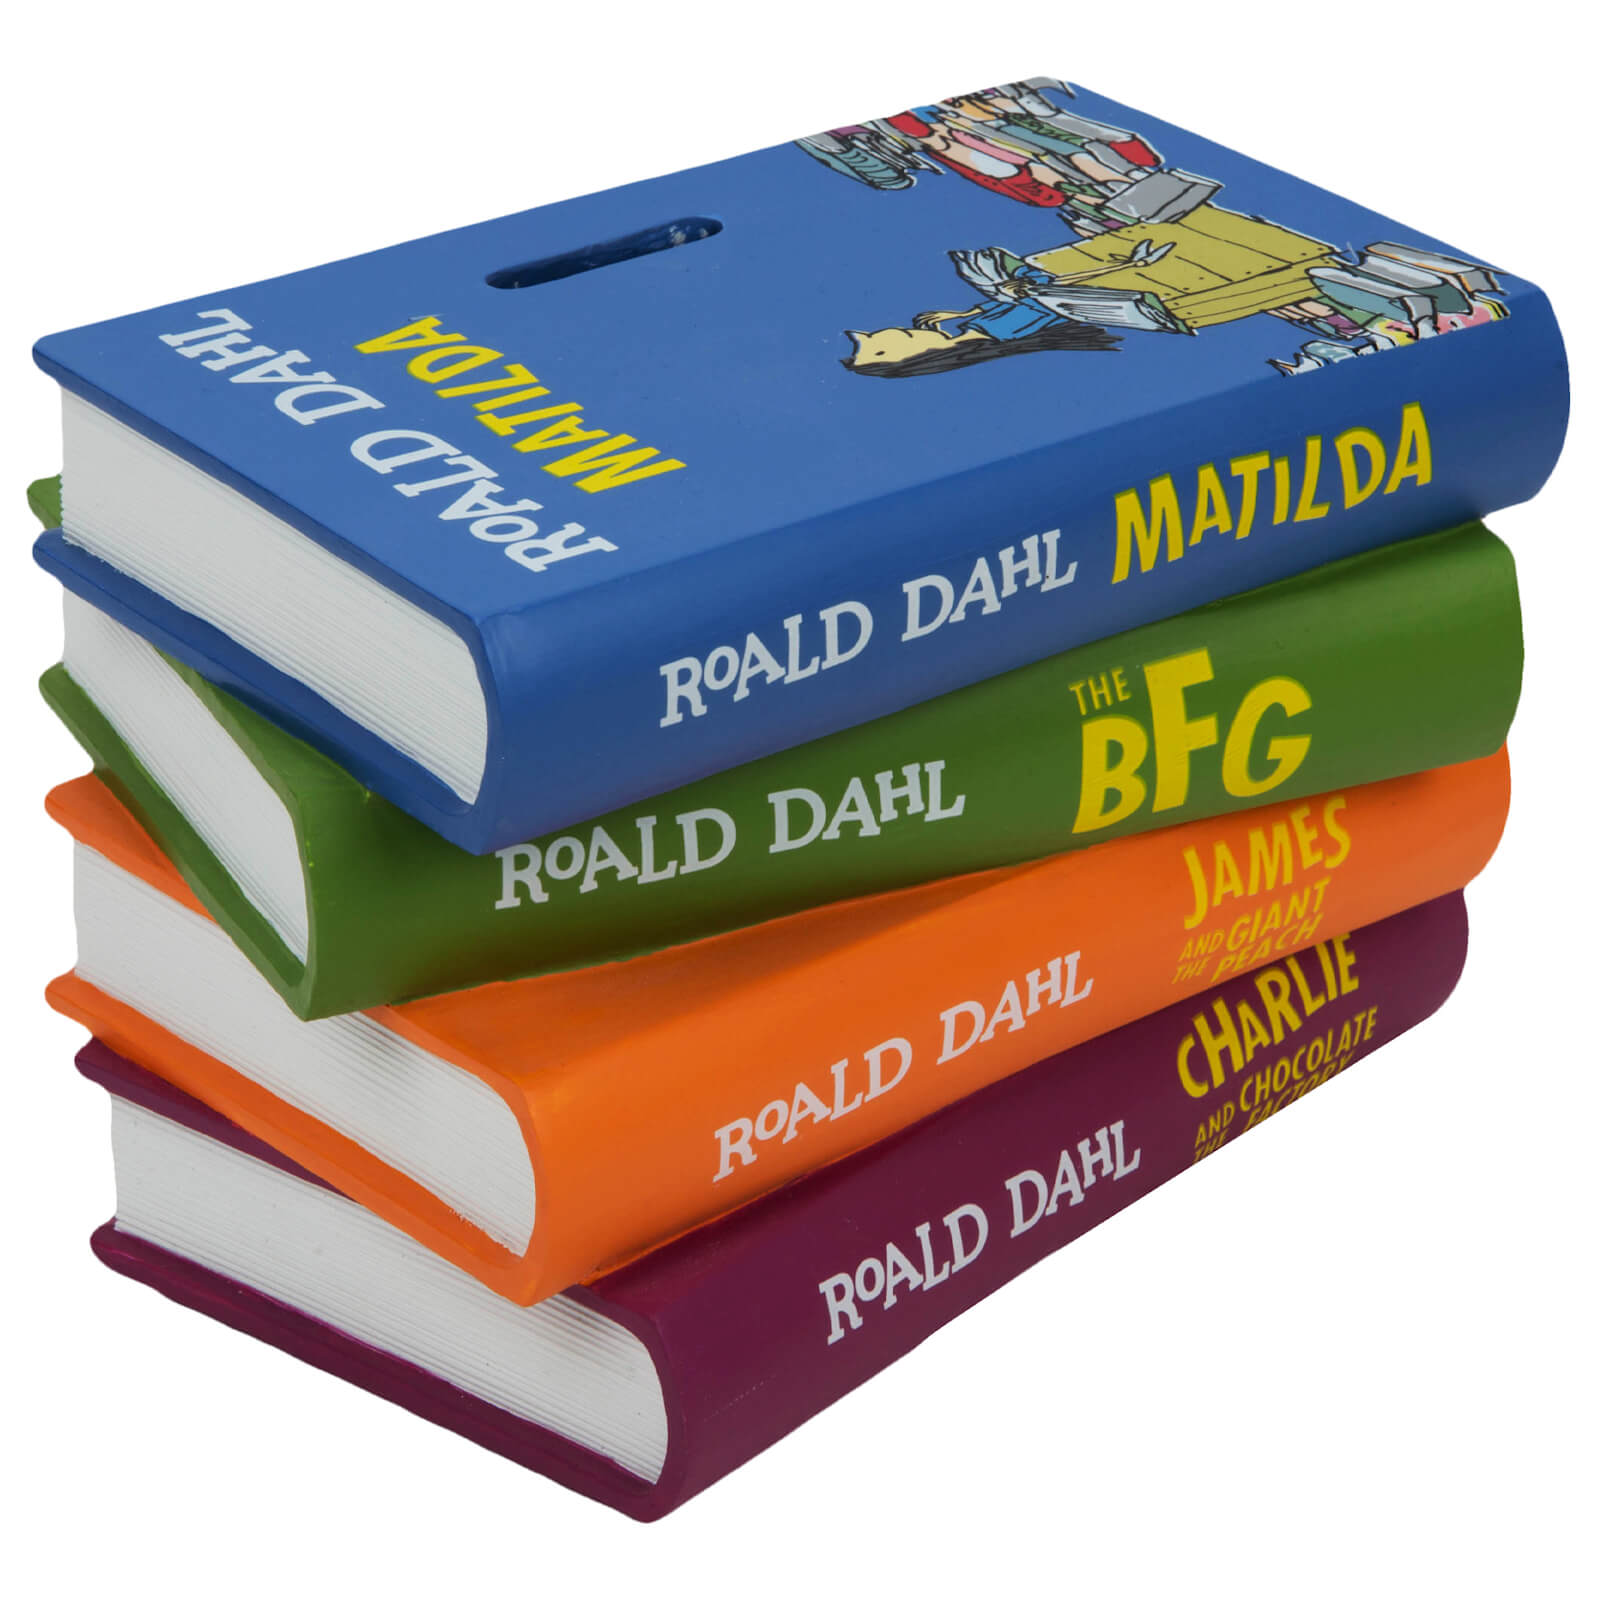 Image of Roald Dahl Matilda Pile of Books Money Box